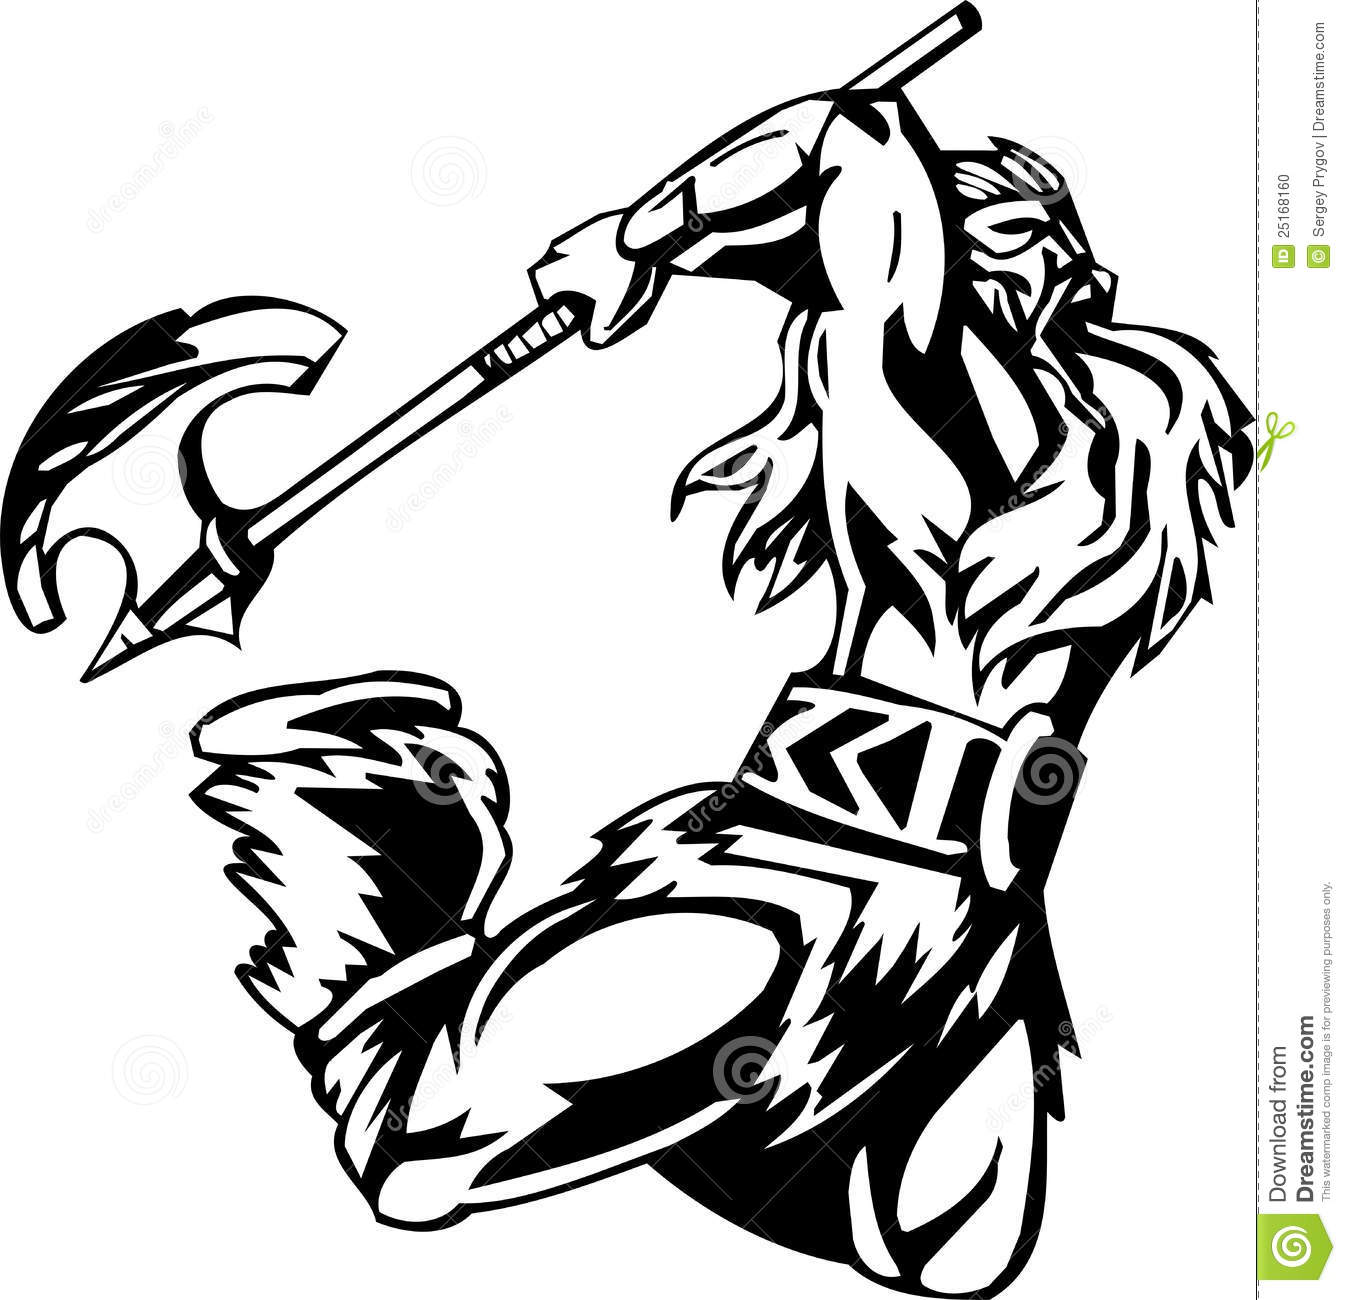 the gallery for  gt  viking clipart black and white cool chevy logo tattoos chevy emblem tattoos designs